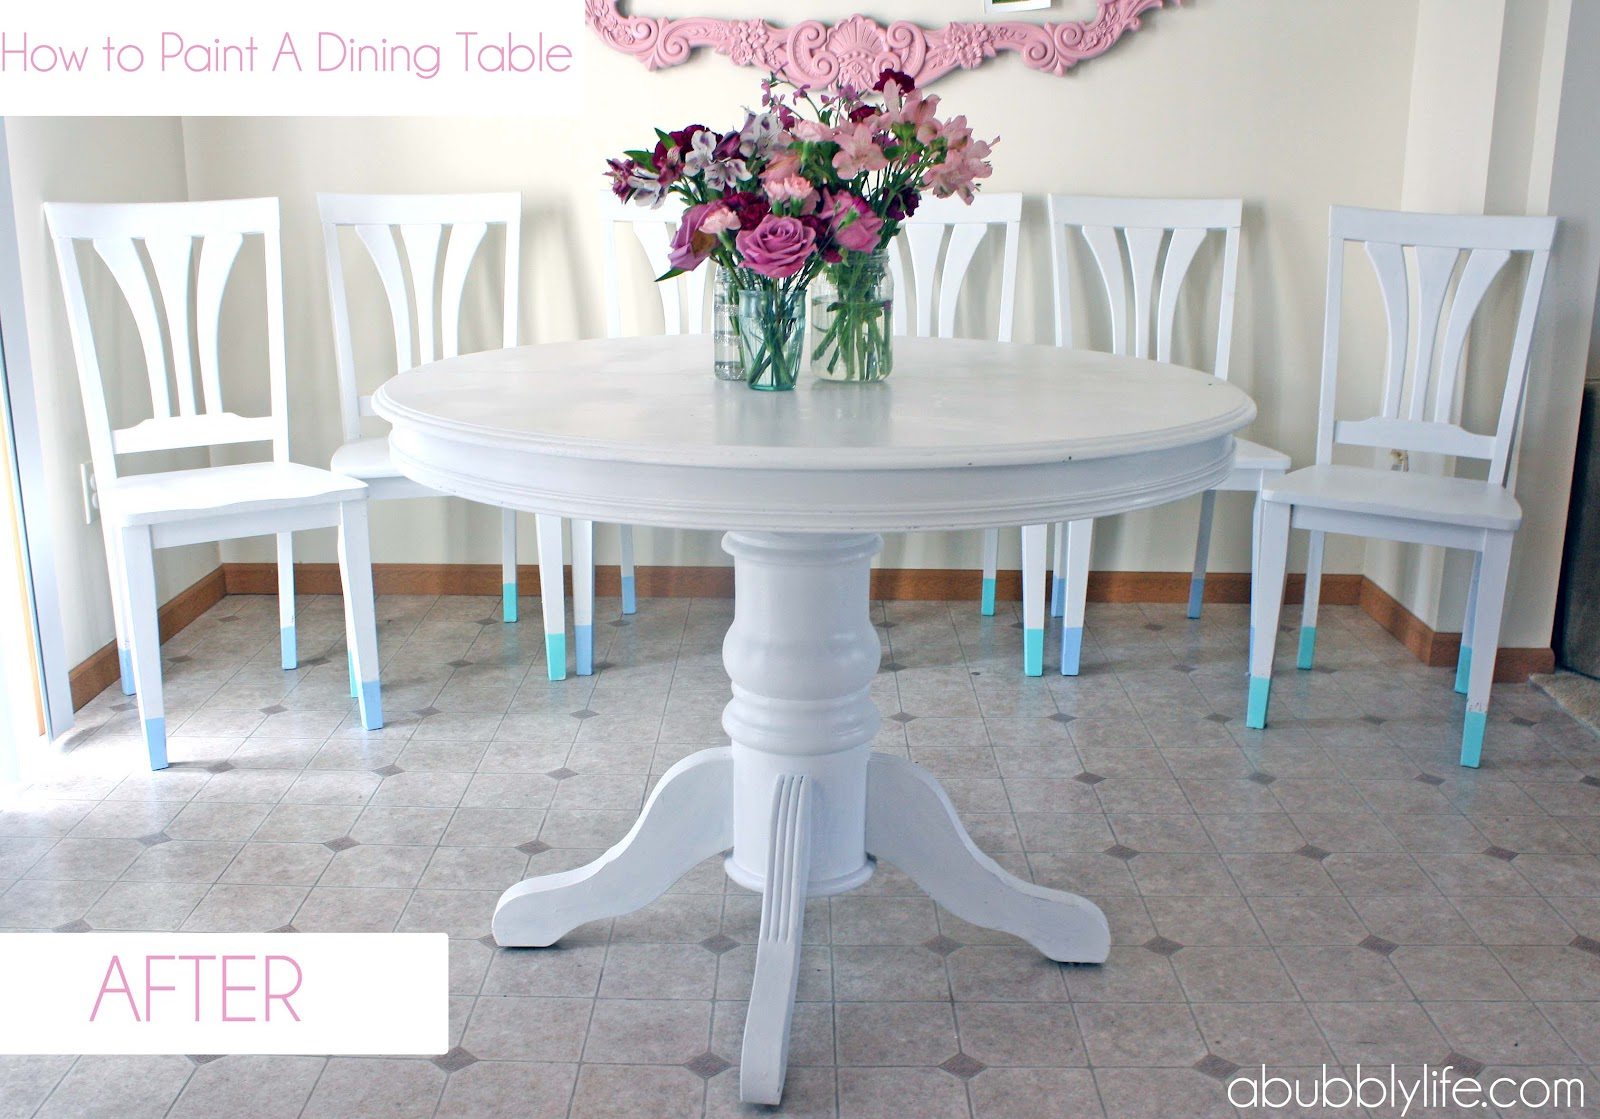 how to paint dining table chairs kitchen table chairs How to Paint a Dining Room Table Chairs Makeover Reveal